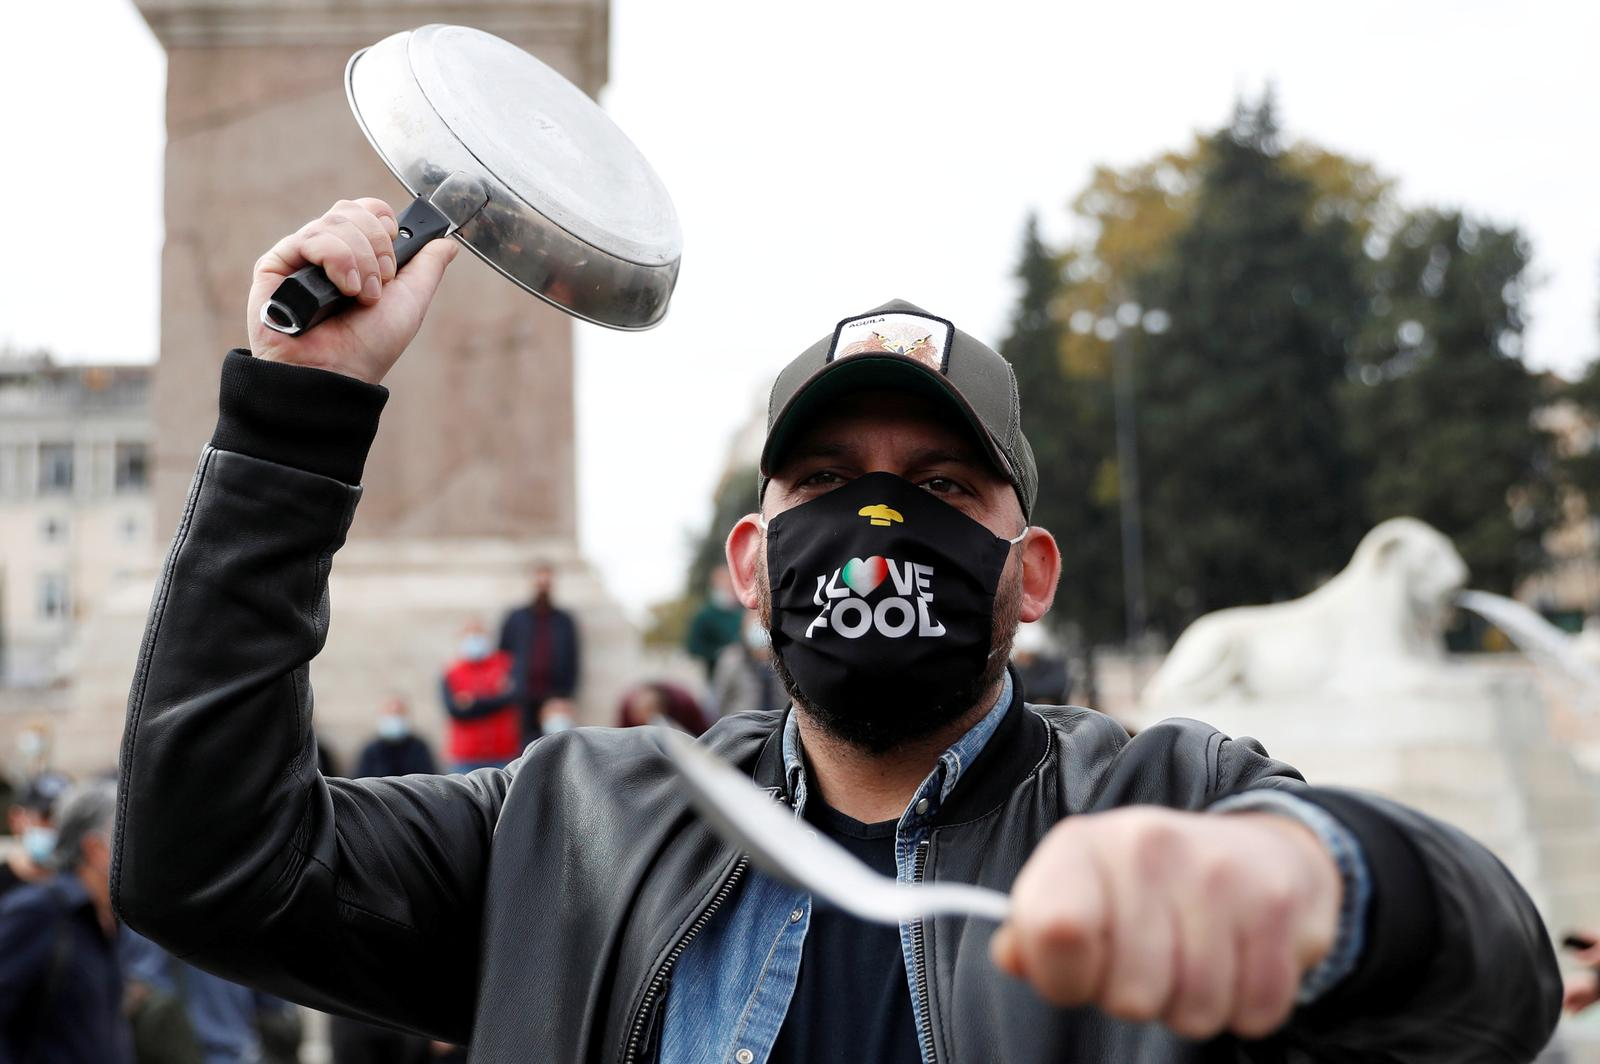 A man holds a frying pan as Italian restaurant and bar workers gather in Piazza del Popolo to protest against the government's coronavirus disease (COVID-19) rules that they have to close everyday by 6 p.m., in Rome, Italy November 2, 2020. Photo: Reuters